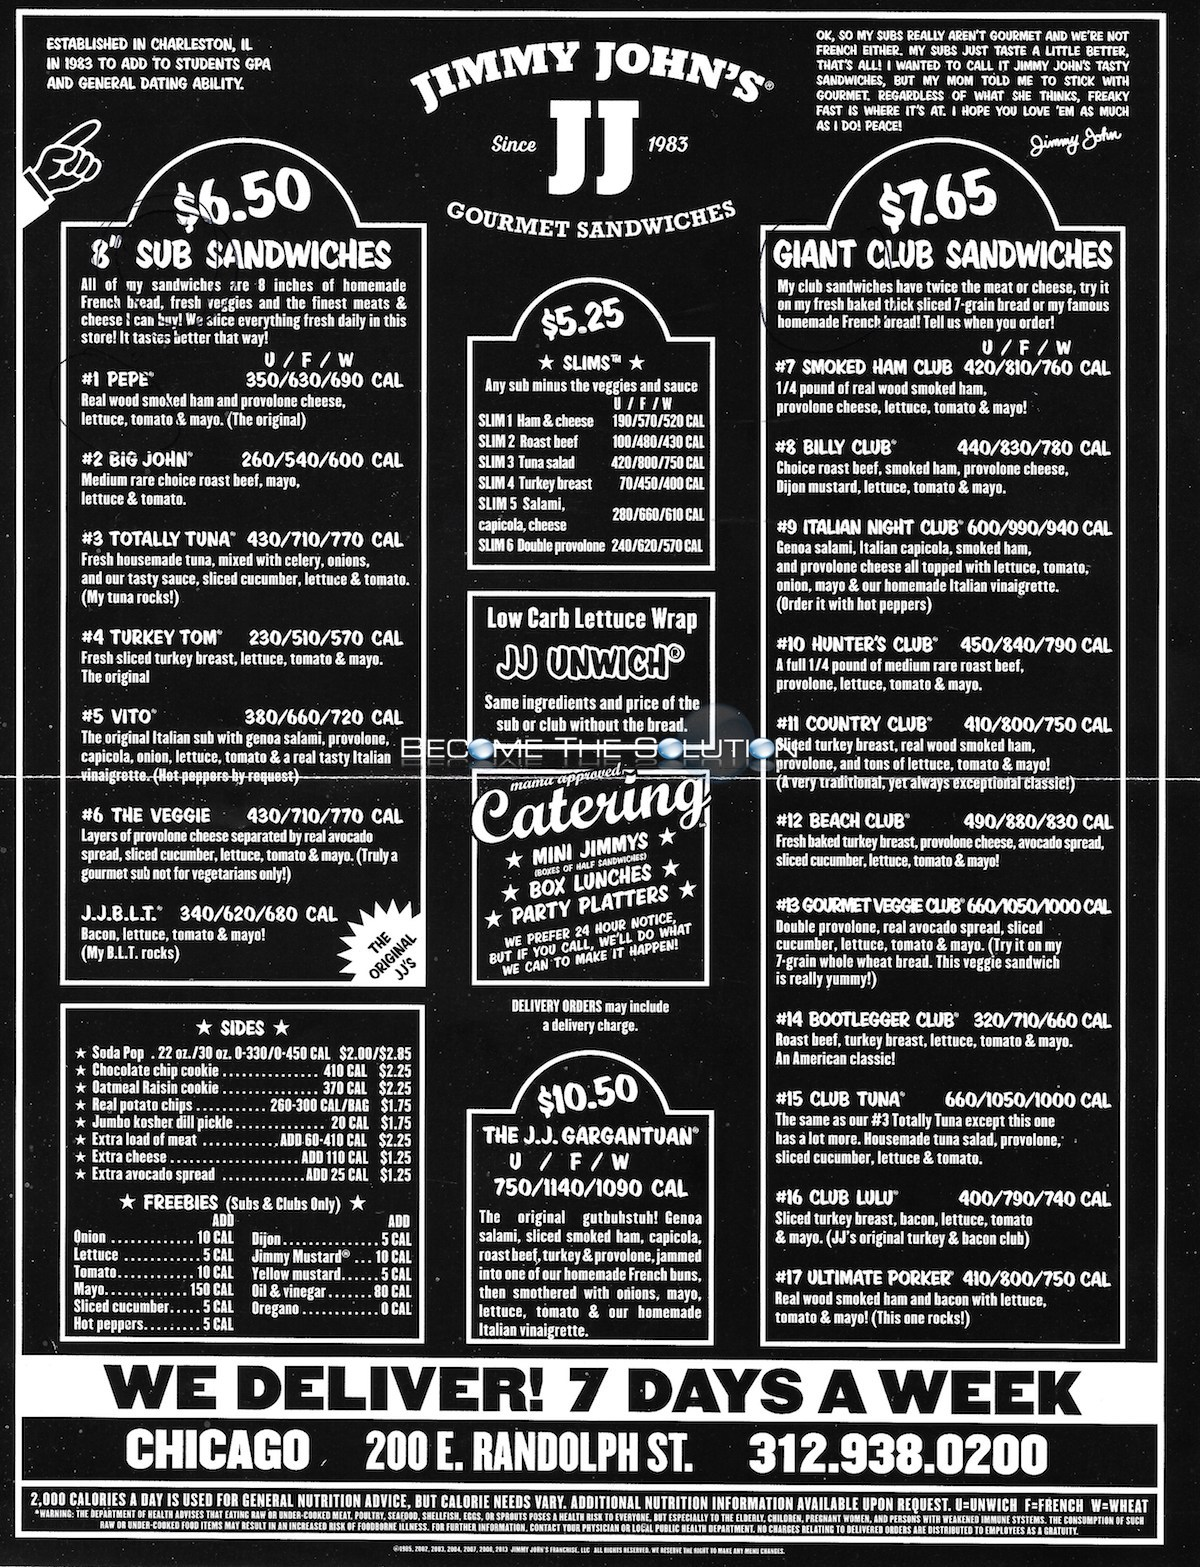 Unwich Jimmy Johns Menu Pdf